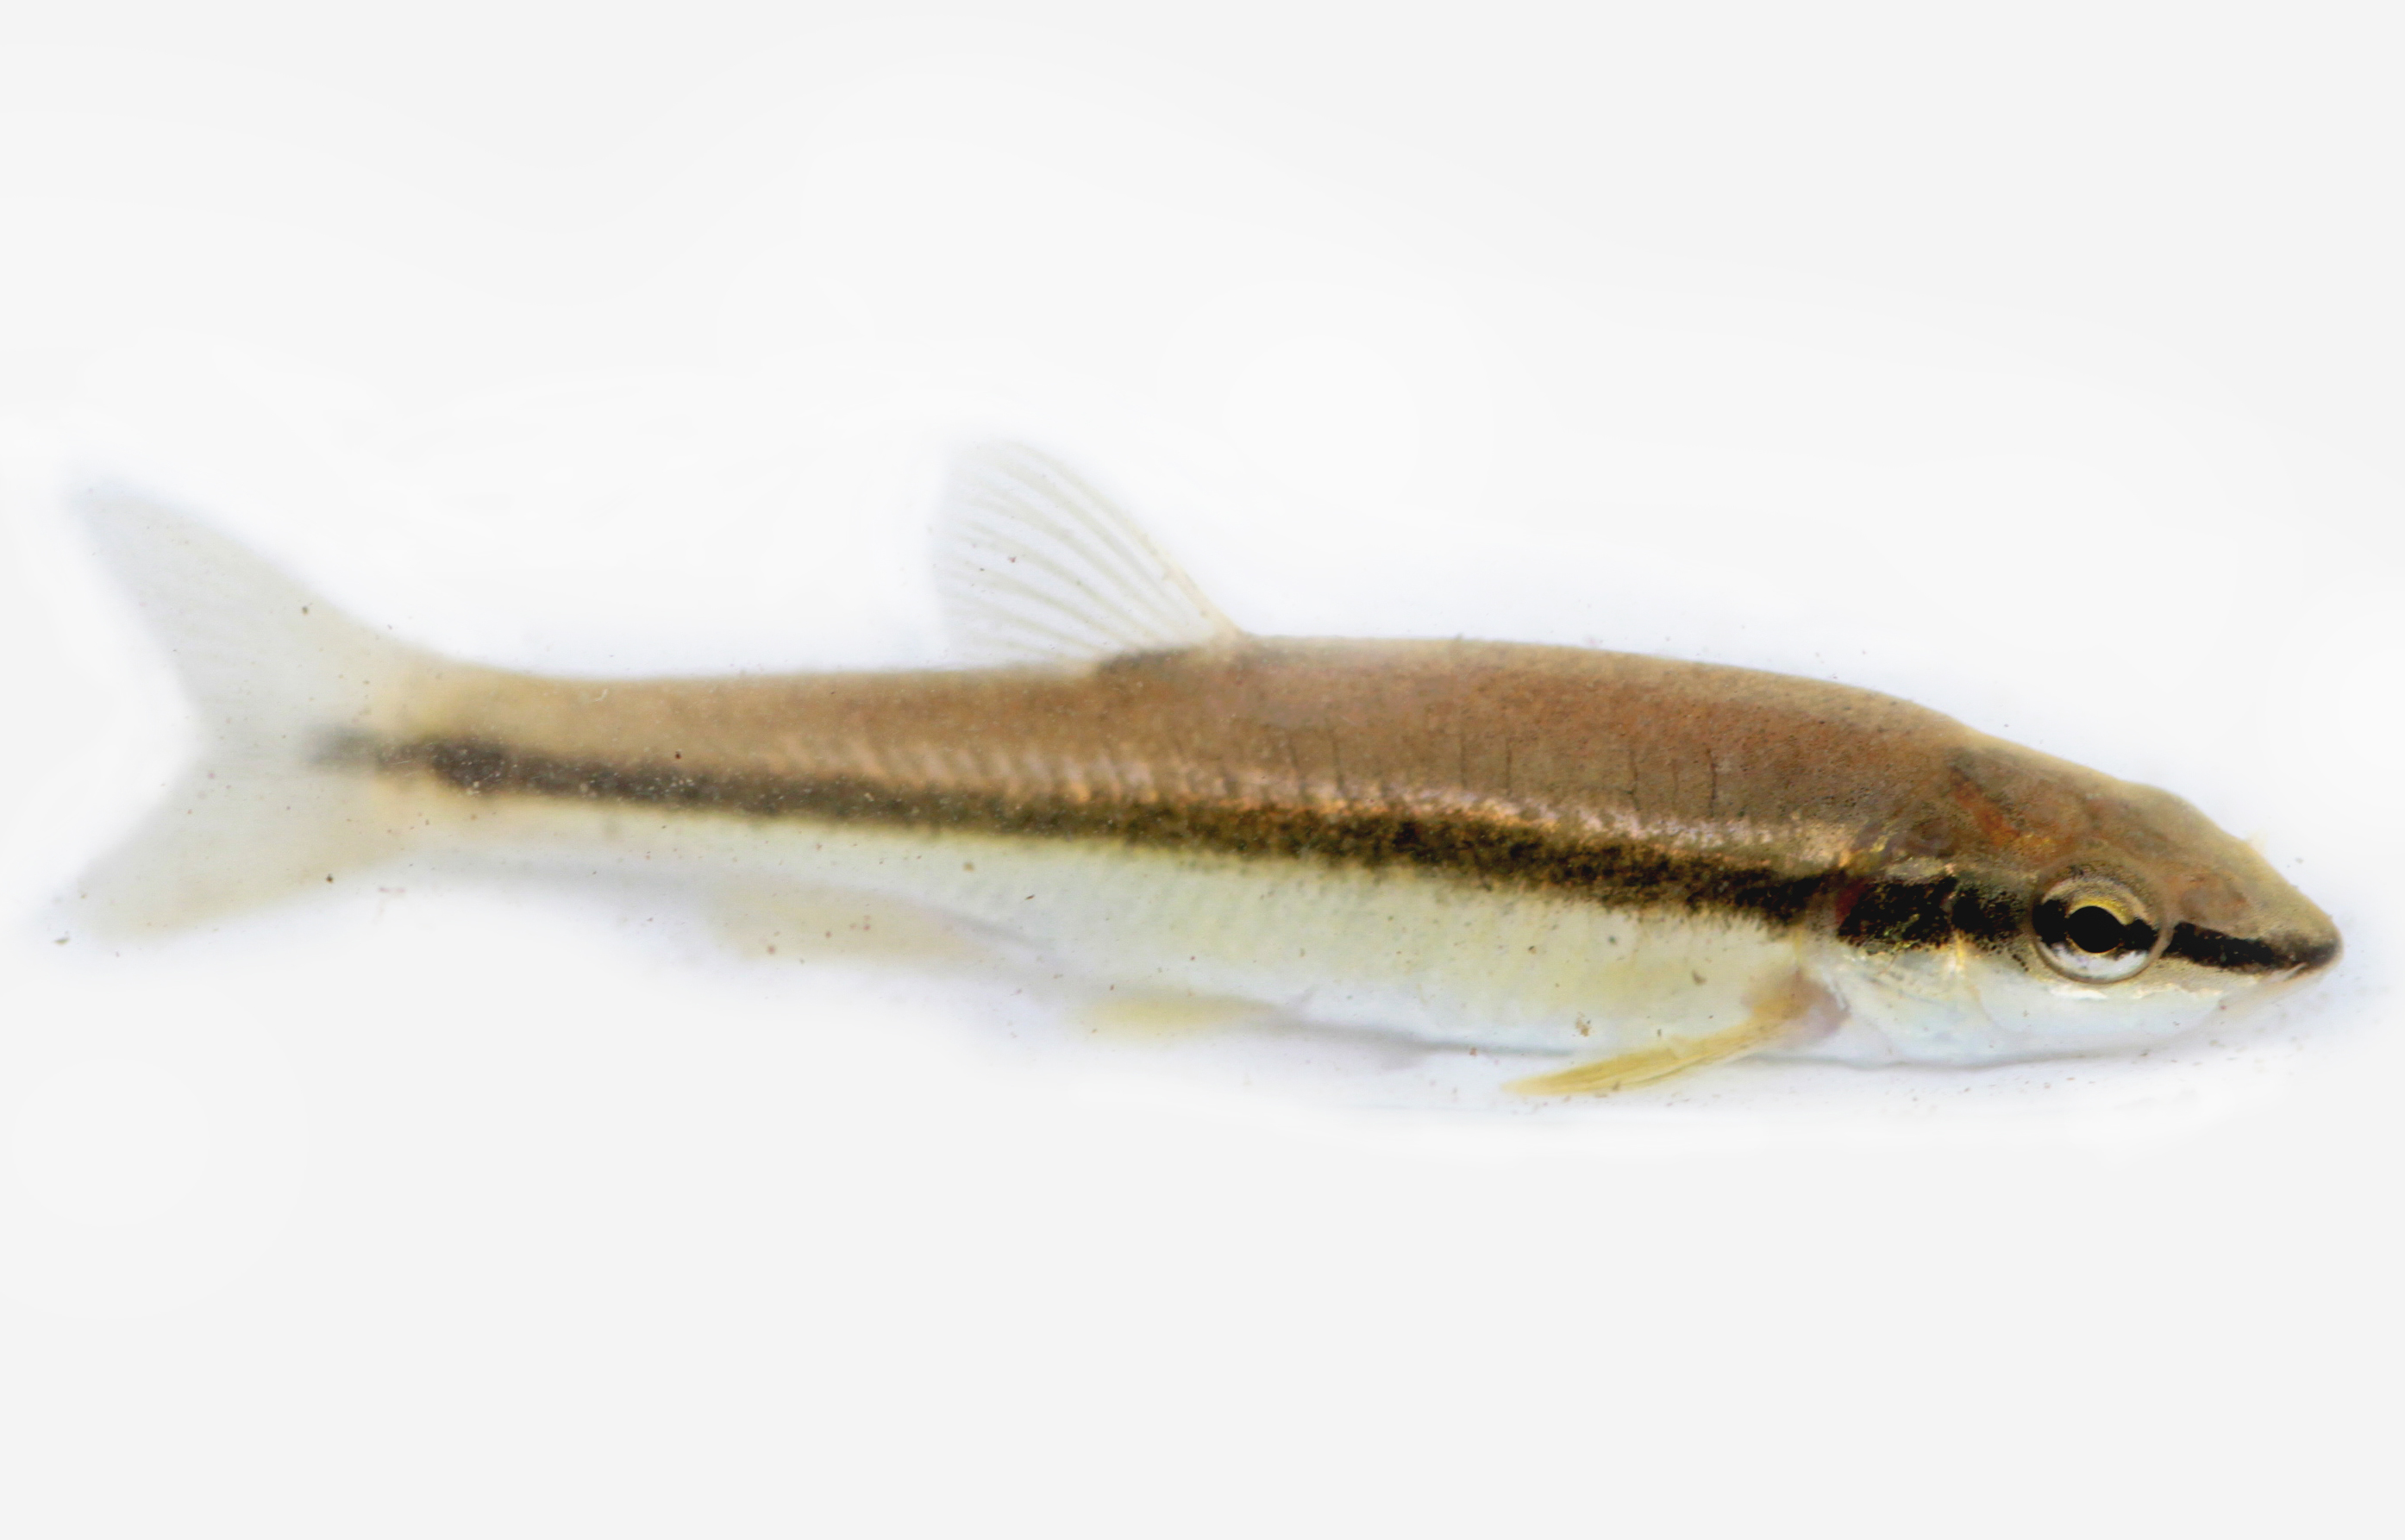 Freshwater fish dace - Click The Image To Open In Full Size